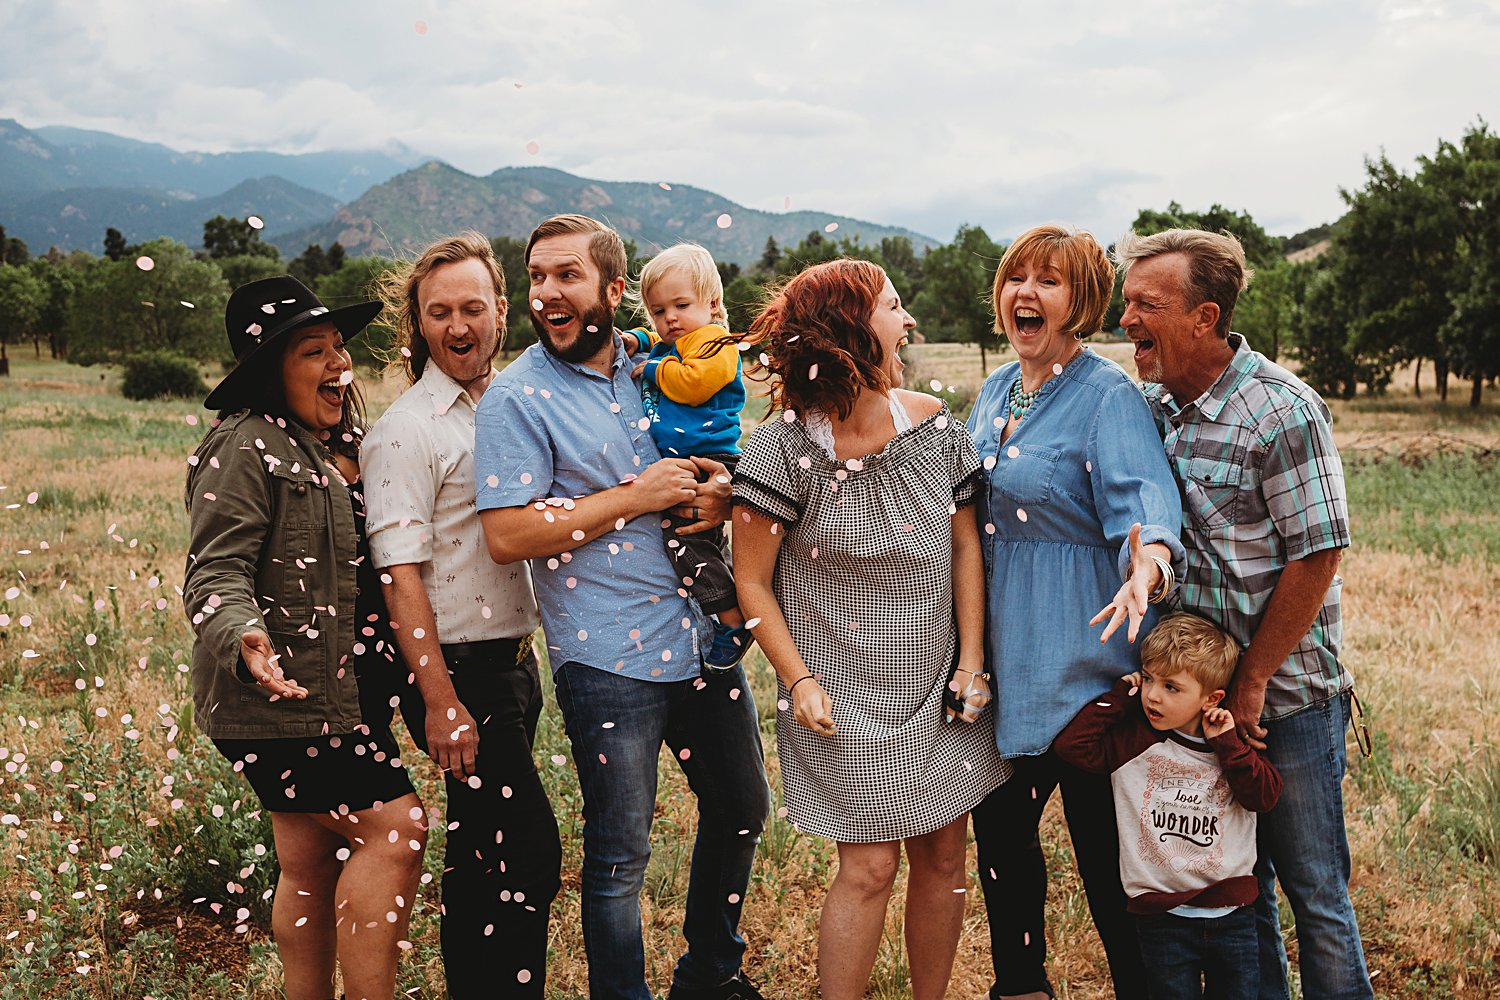 Extended family popping a gender reveal balloon